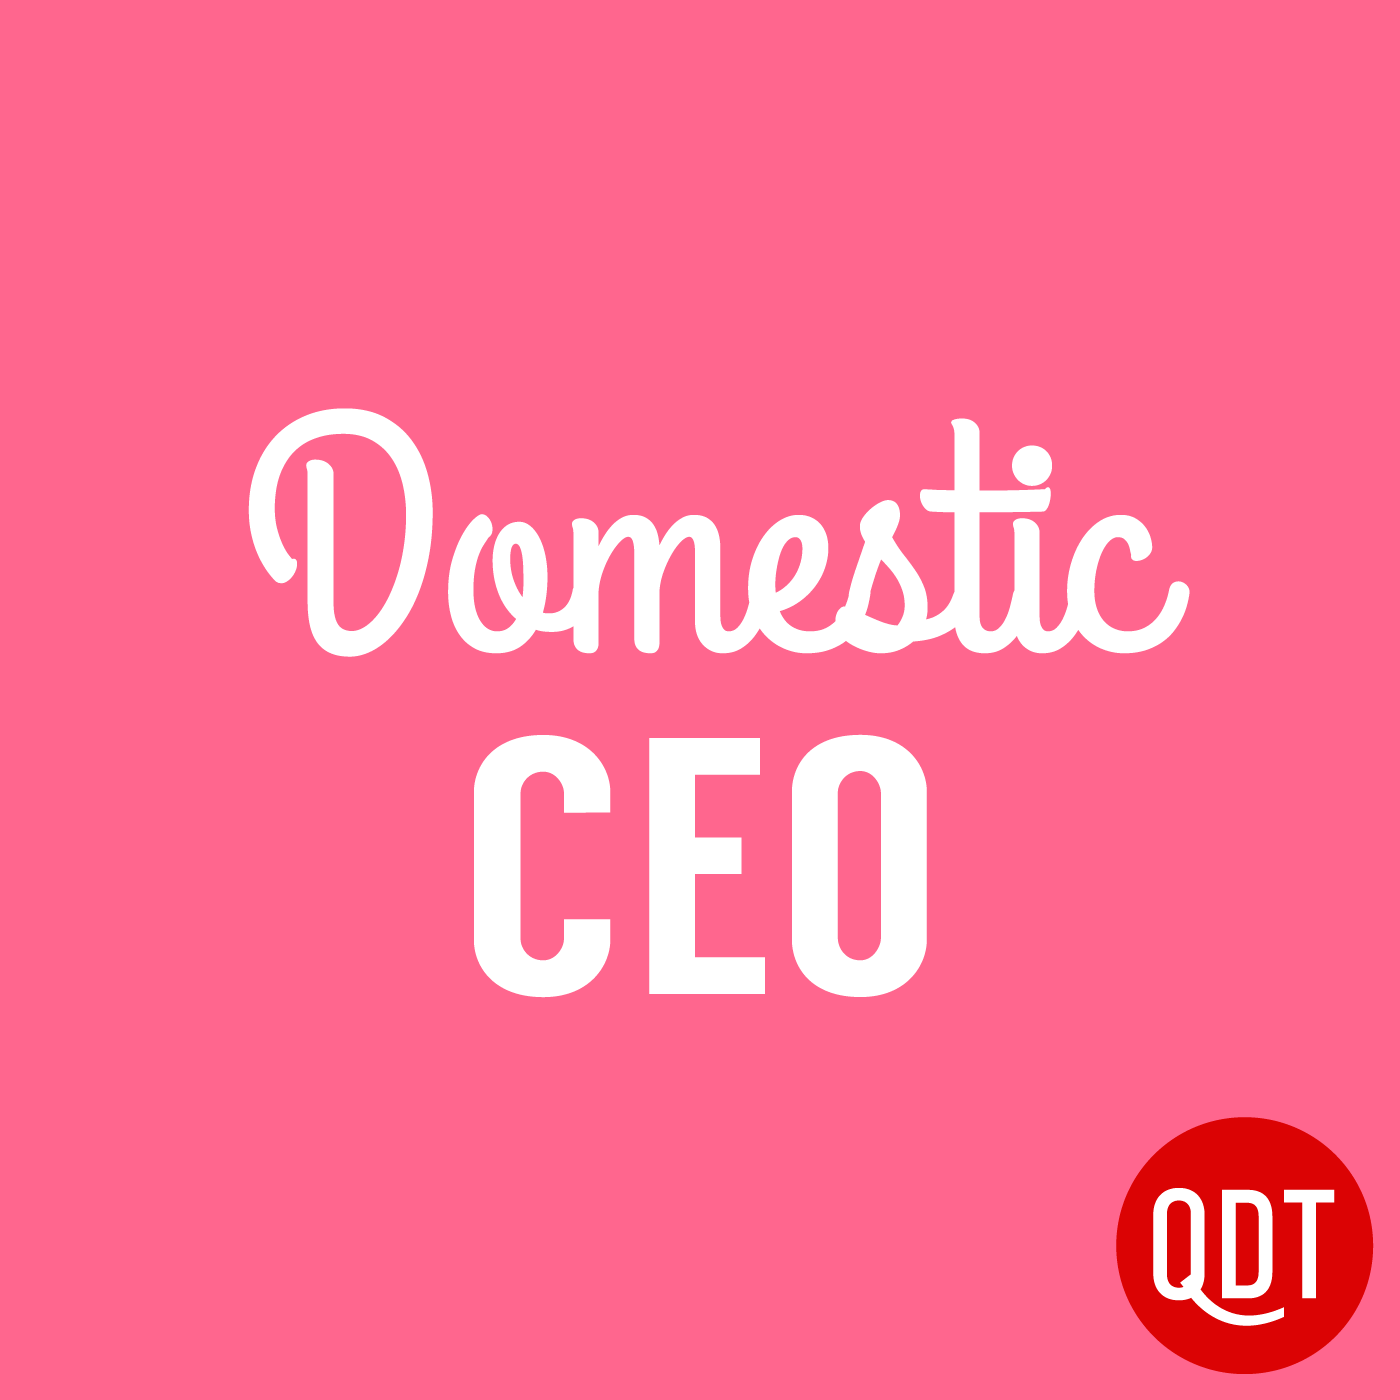 Domestic CEO's Quick & Dirty Tips to Managing Your Home